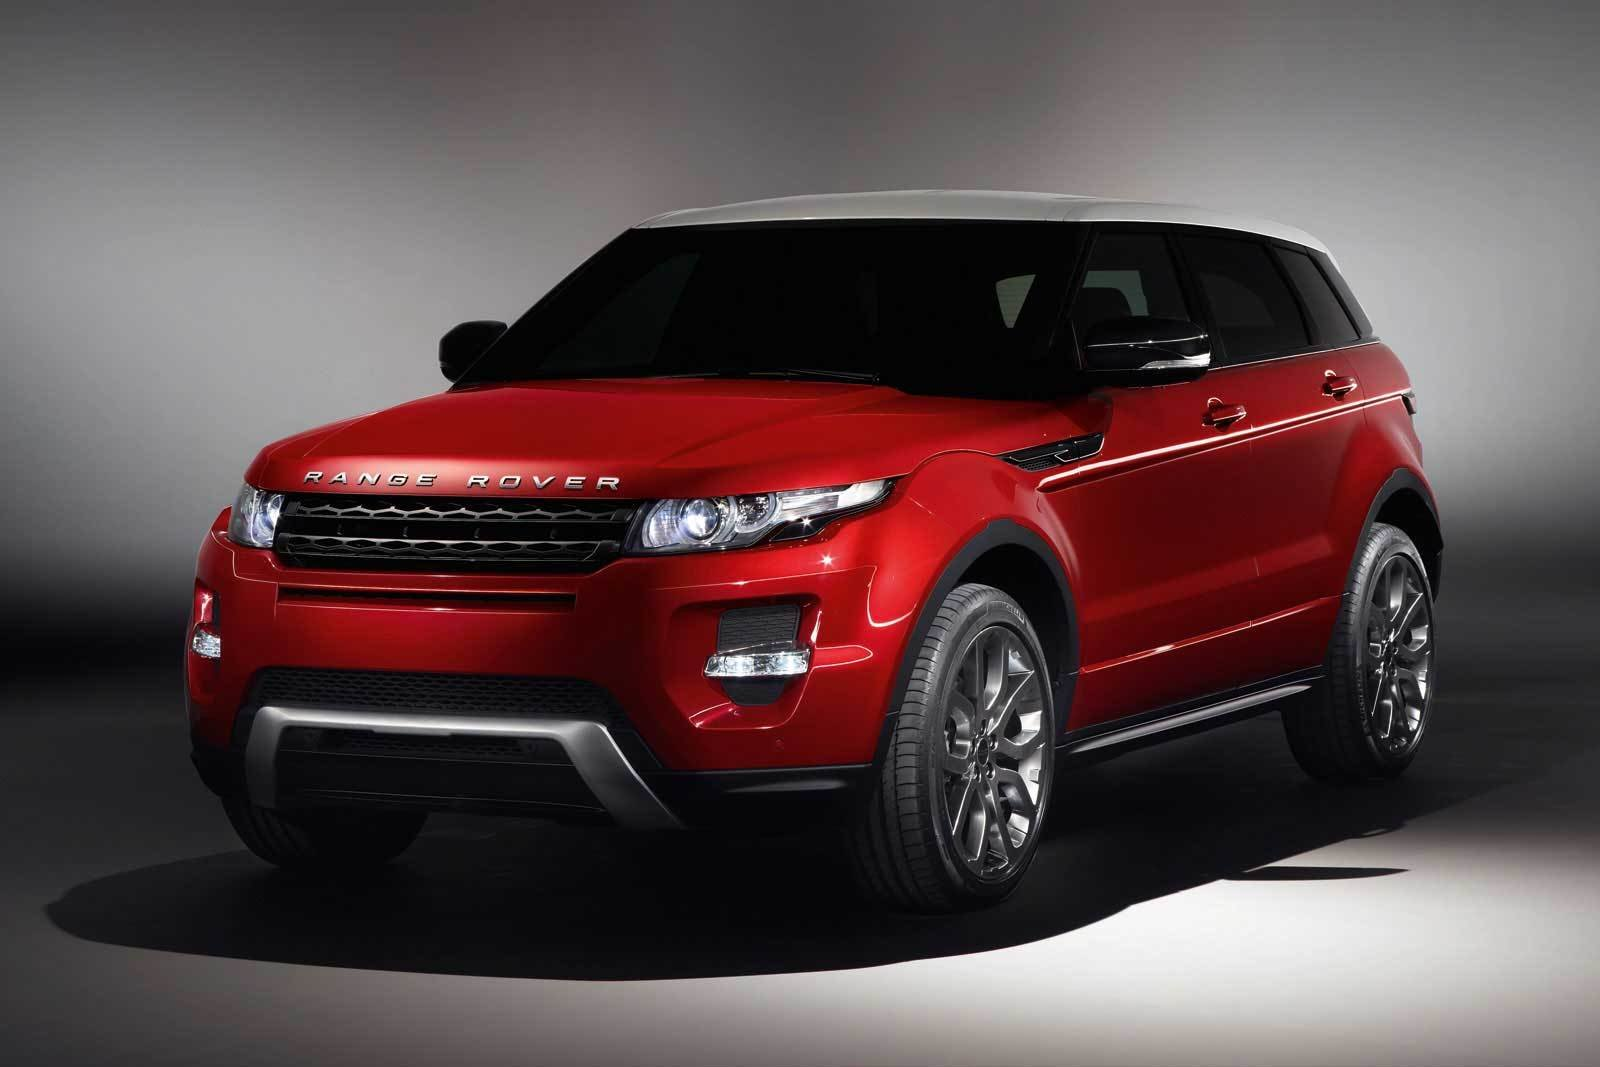 New Land Rover Luxury Car Speedy Wallpapers Hd Car On This Month